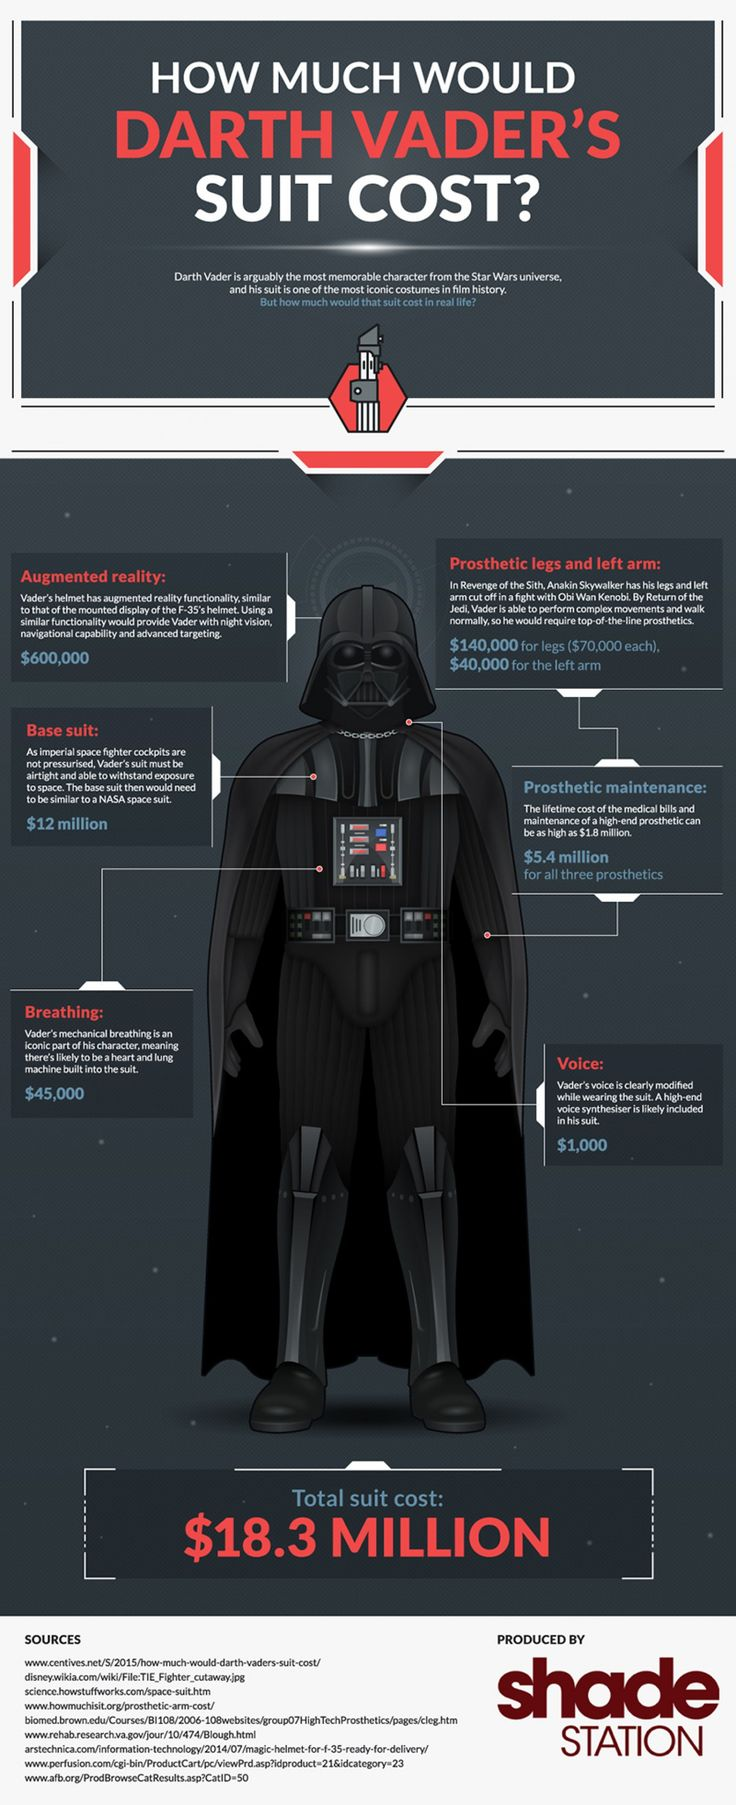 Here's how much Darth Vader's suit would cost in real life.